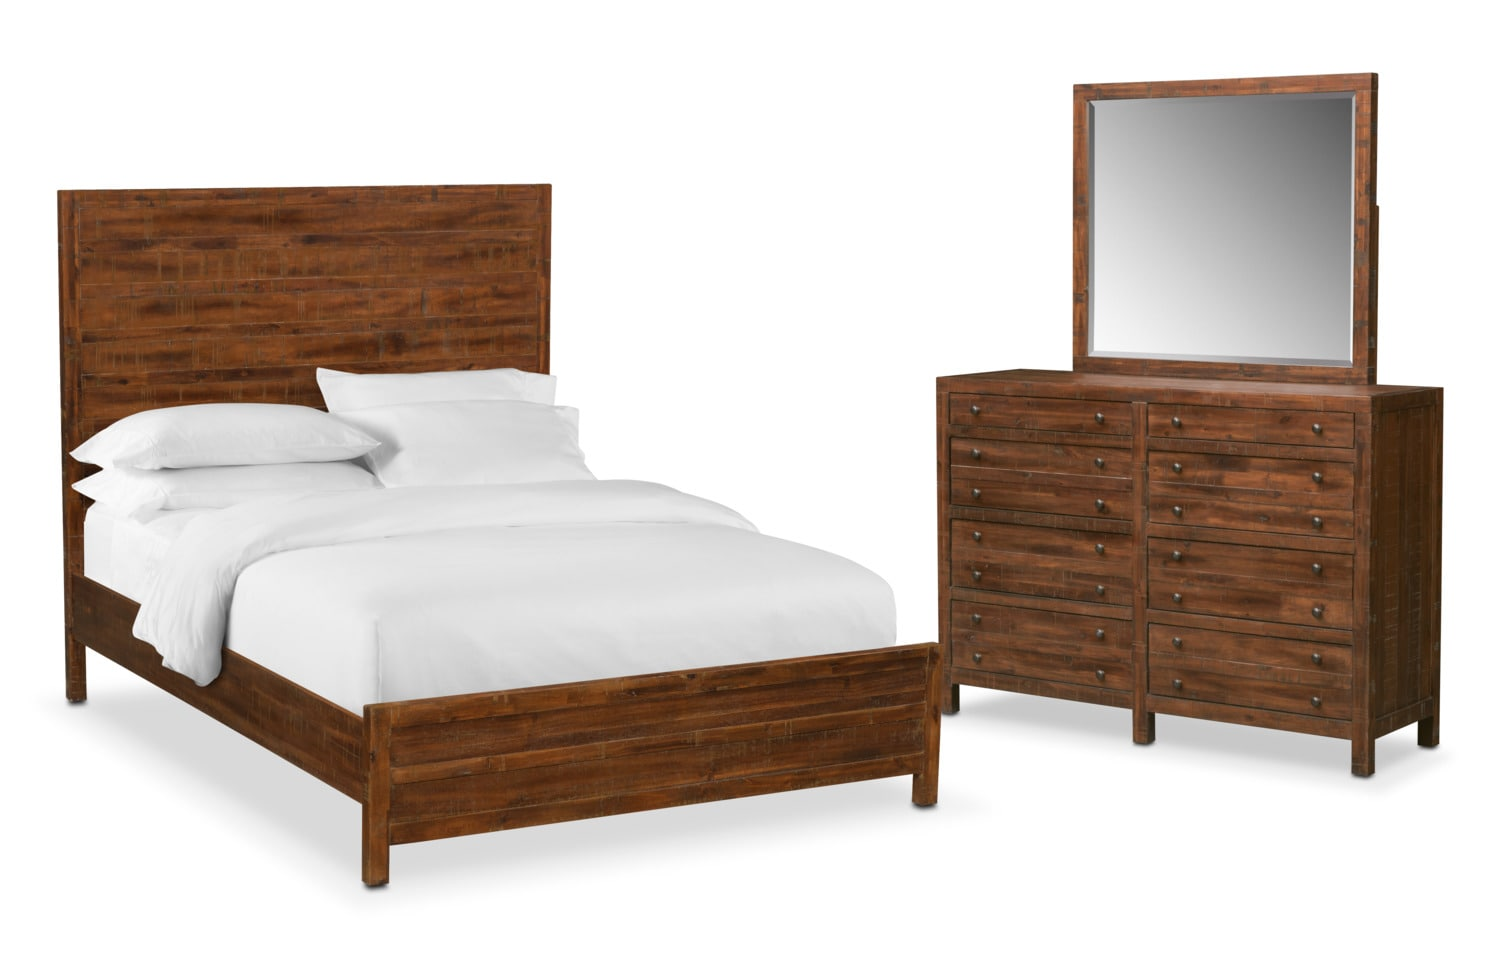 Ryder 5 Piece Queen Bedroom Set   Mahogany